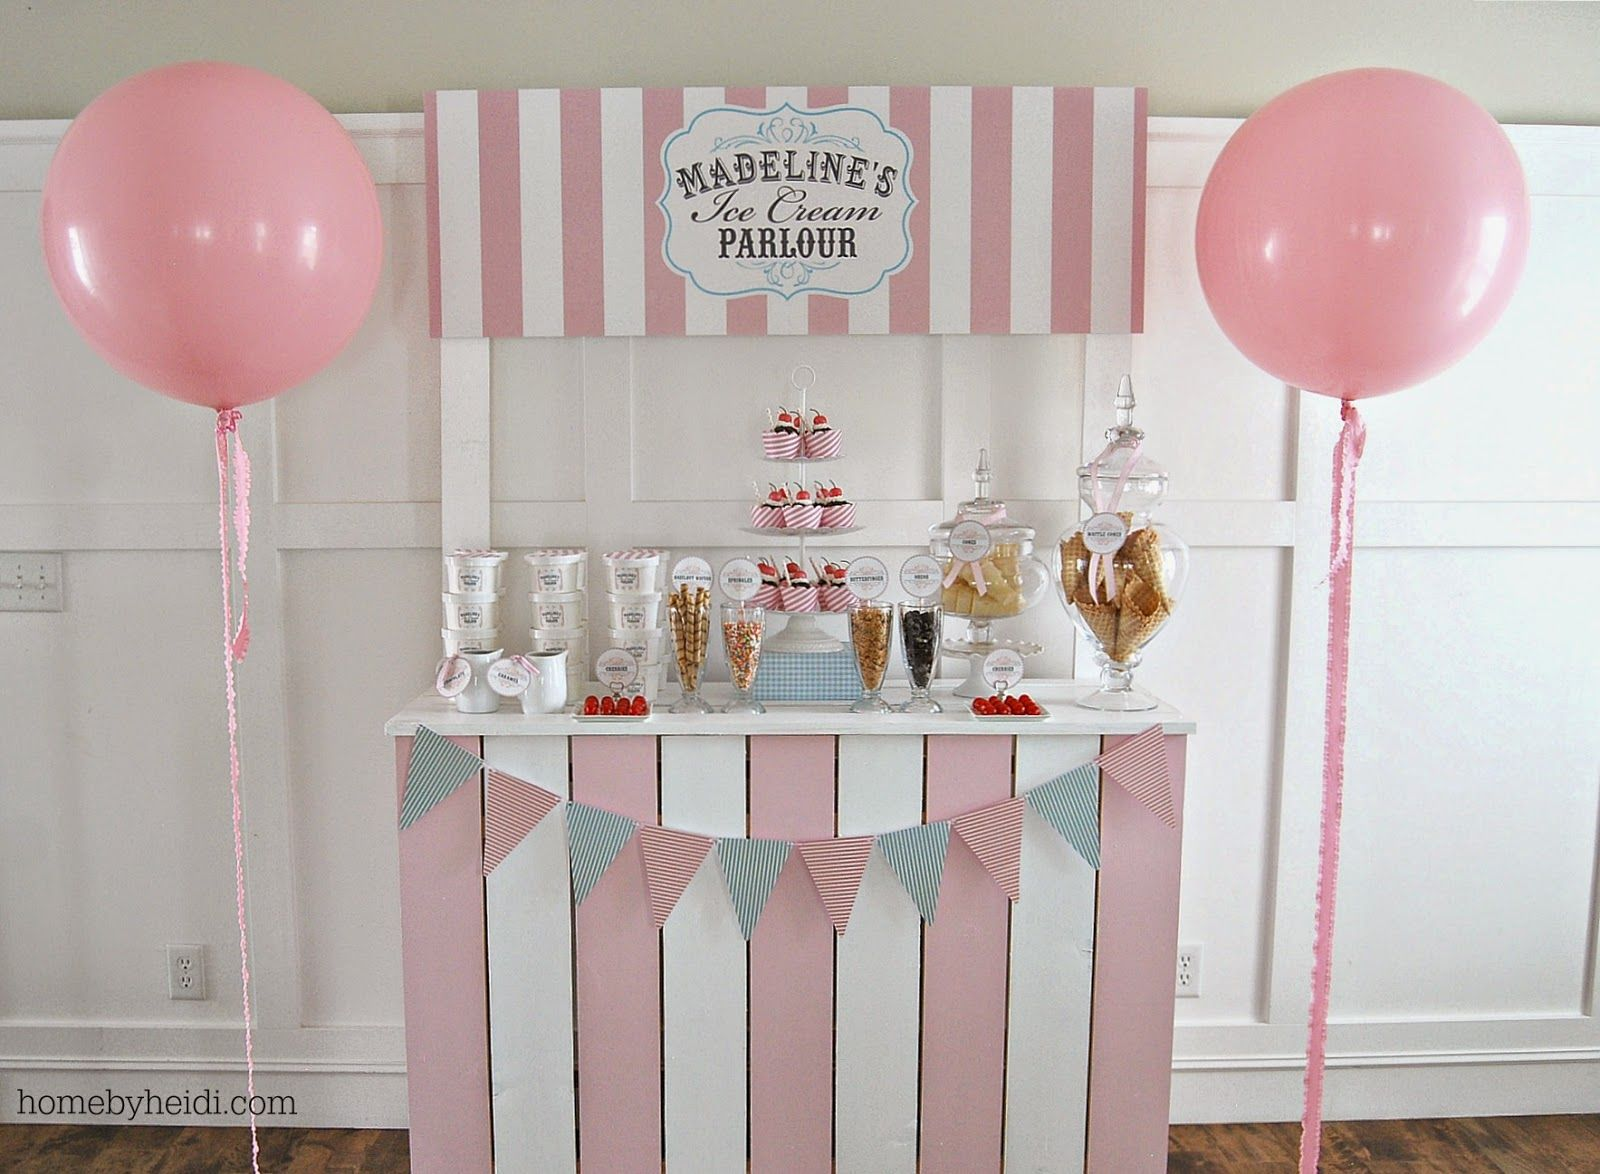 Home by Heidi: Madeline\'s Ice Cream Parlor | Stella\'s first bday ...